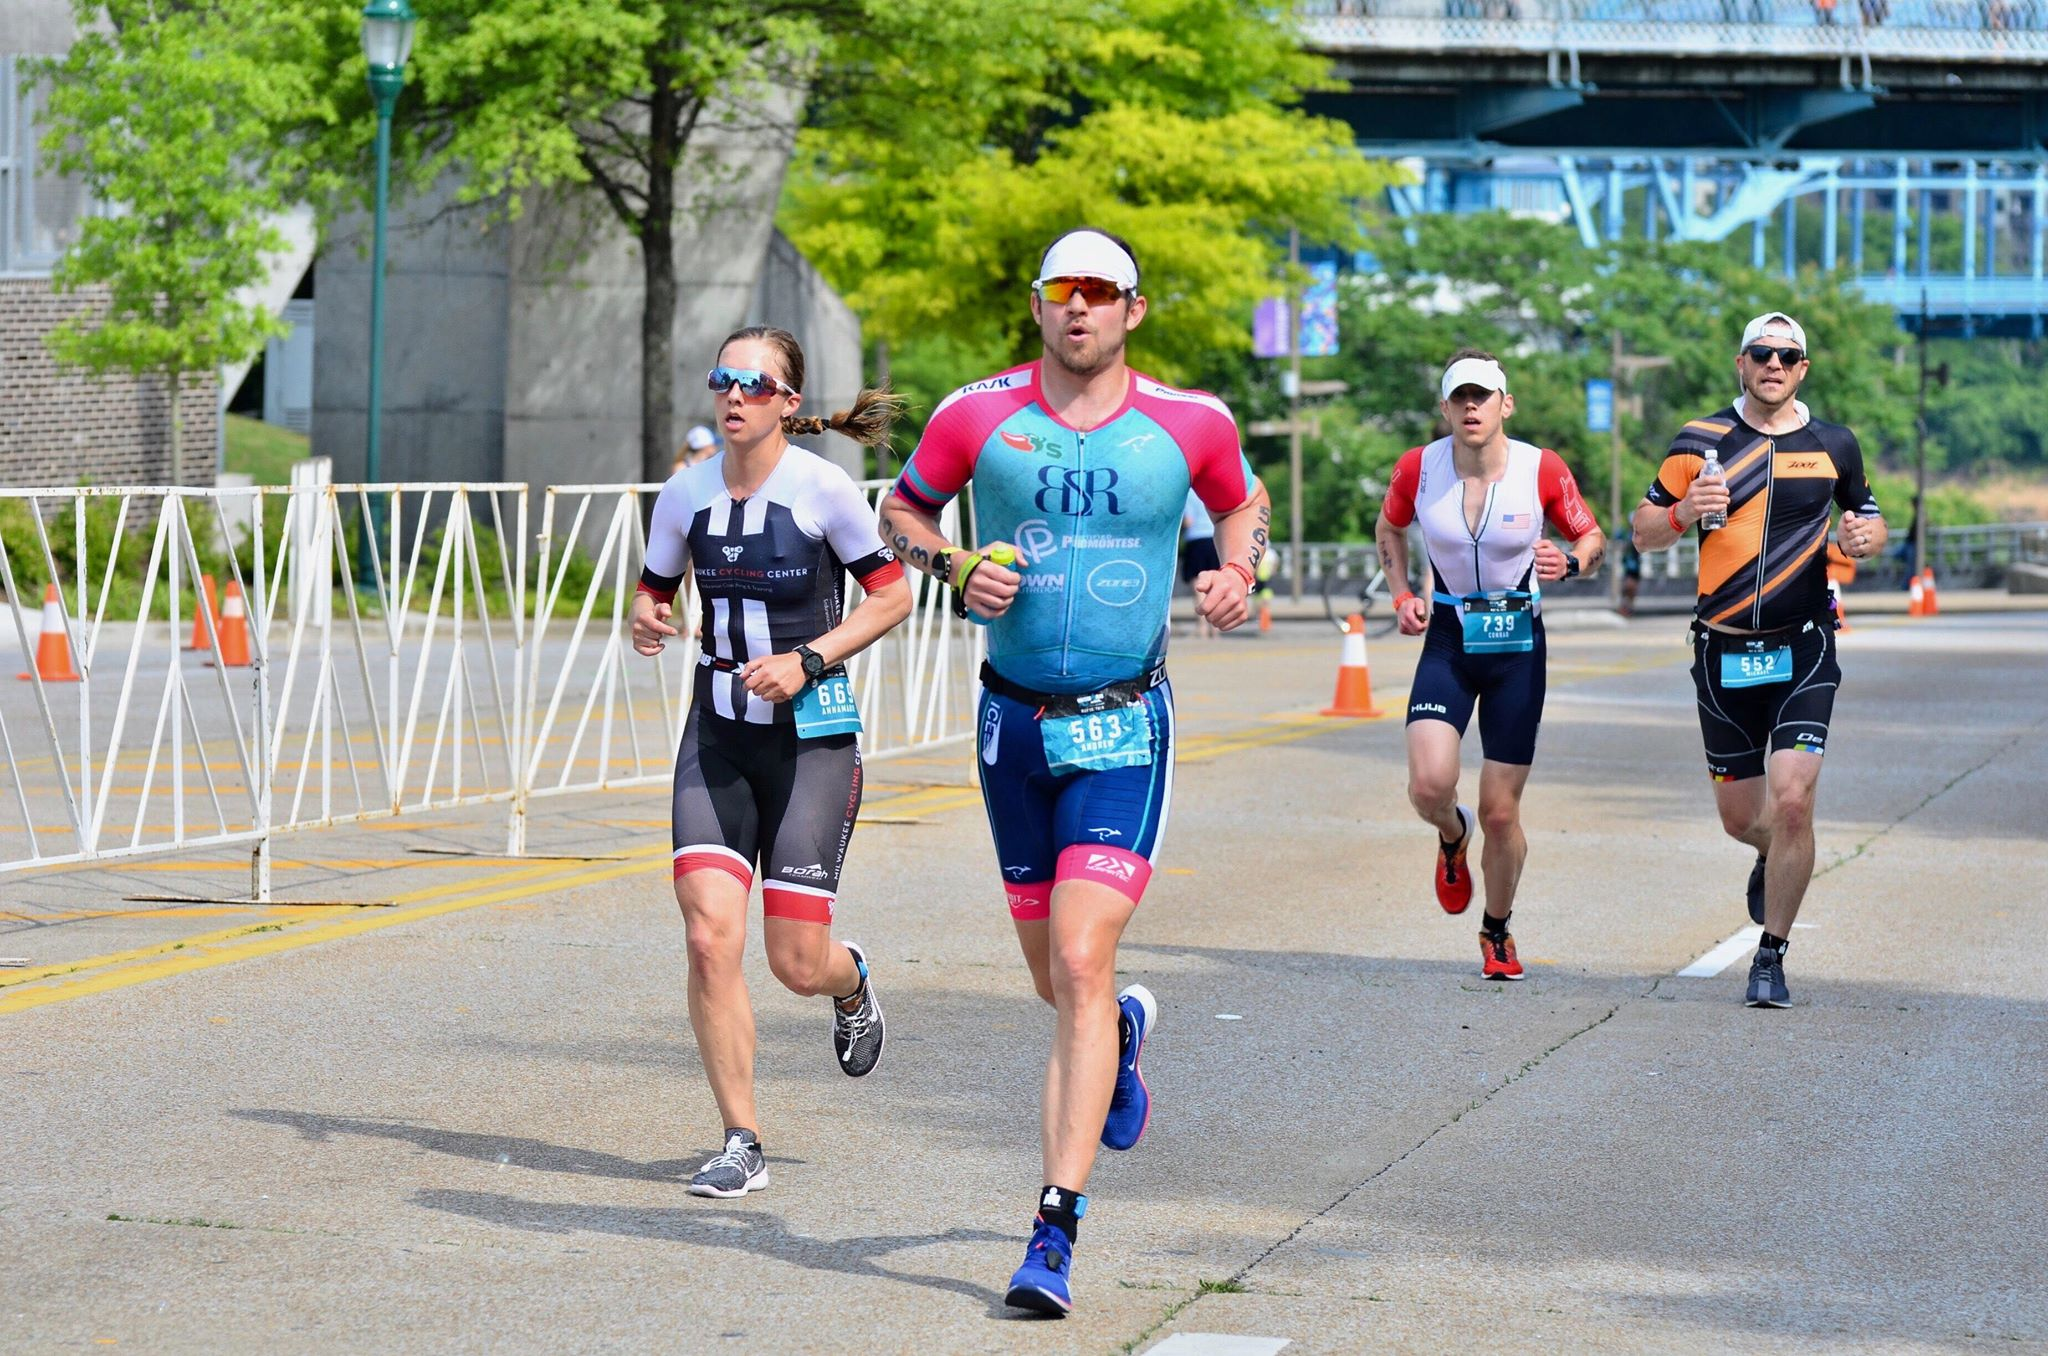 Coach_Terry_Wilson_Pursuit_of_The_Perfect_Race_IRONMAN_70point3_Chattanooga_Andrew_Lewis_7.jpg